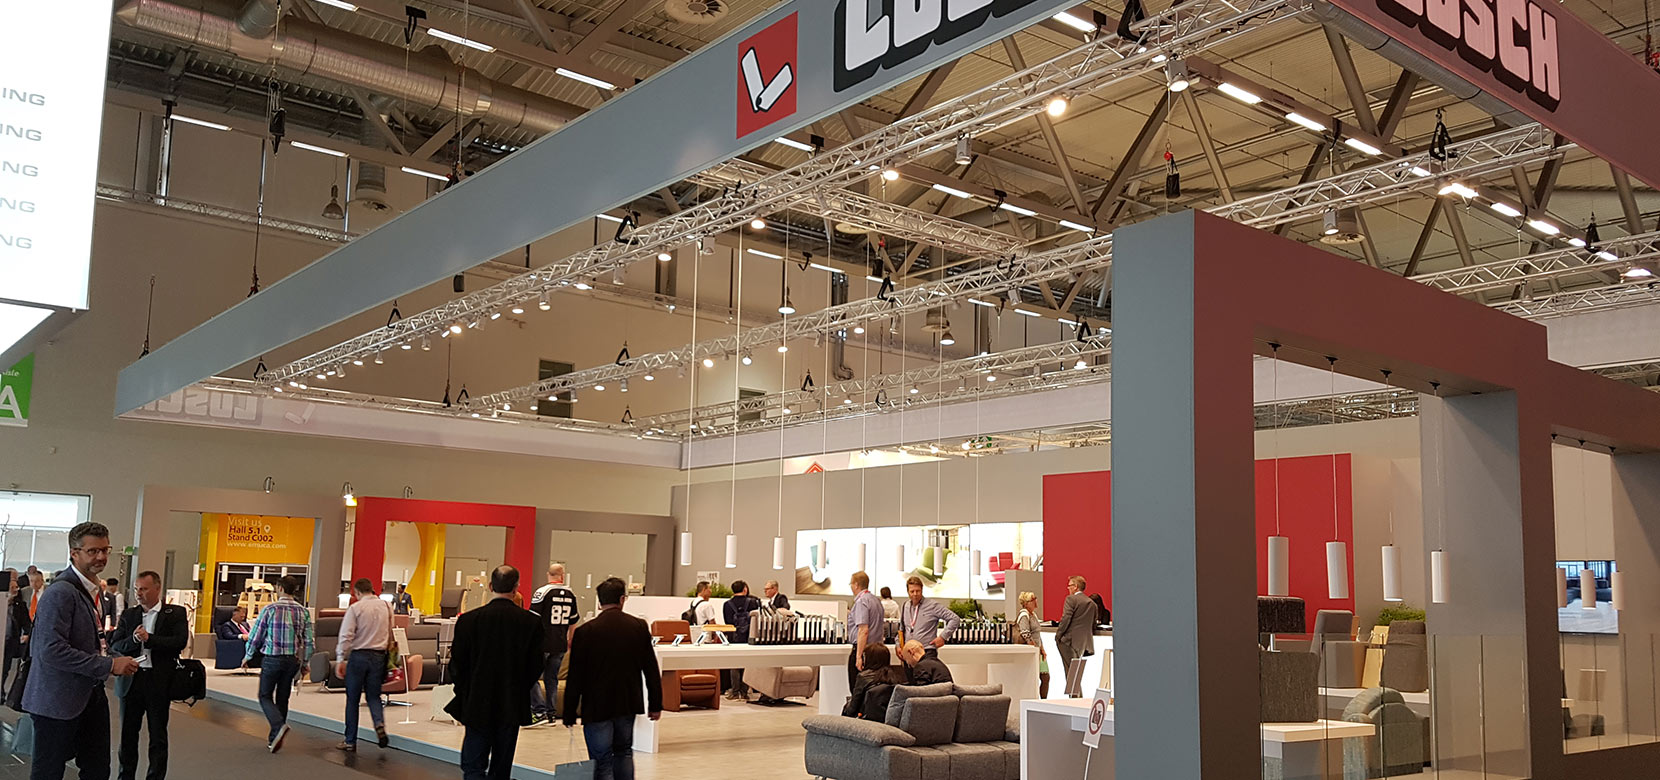 Messe-interzum_1660x780_01.jpg